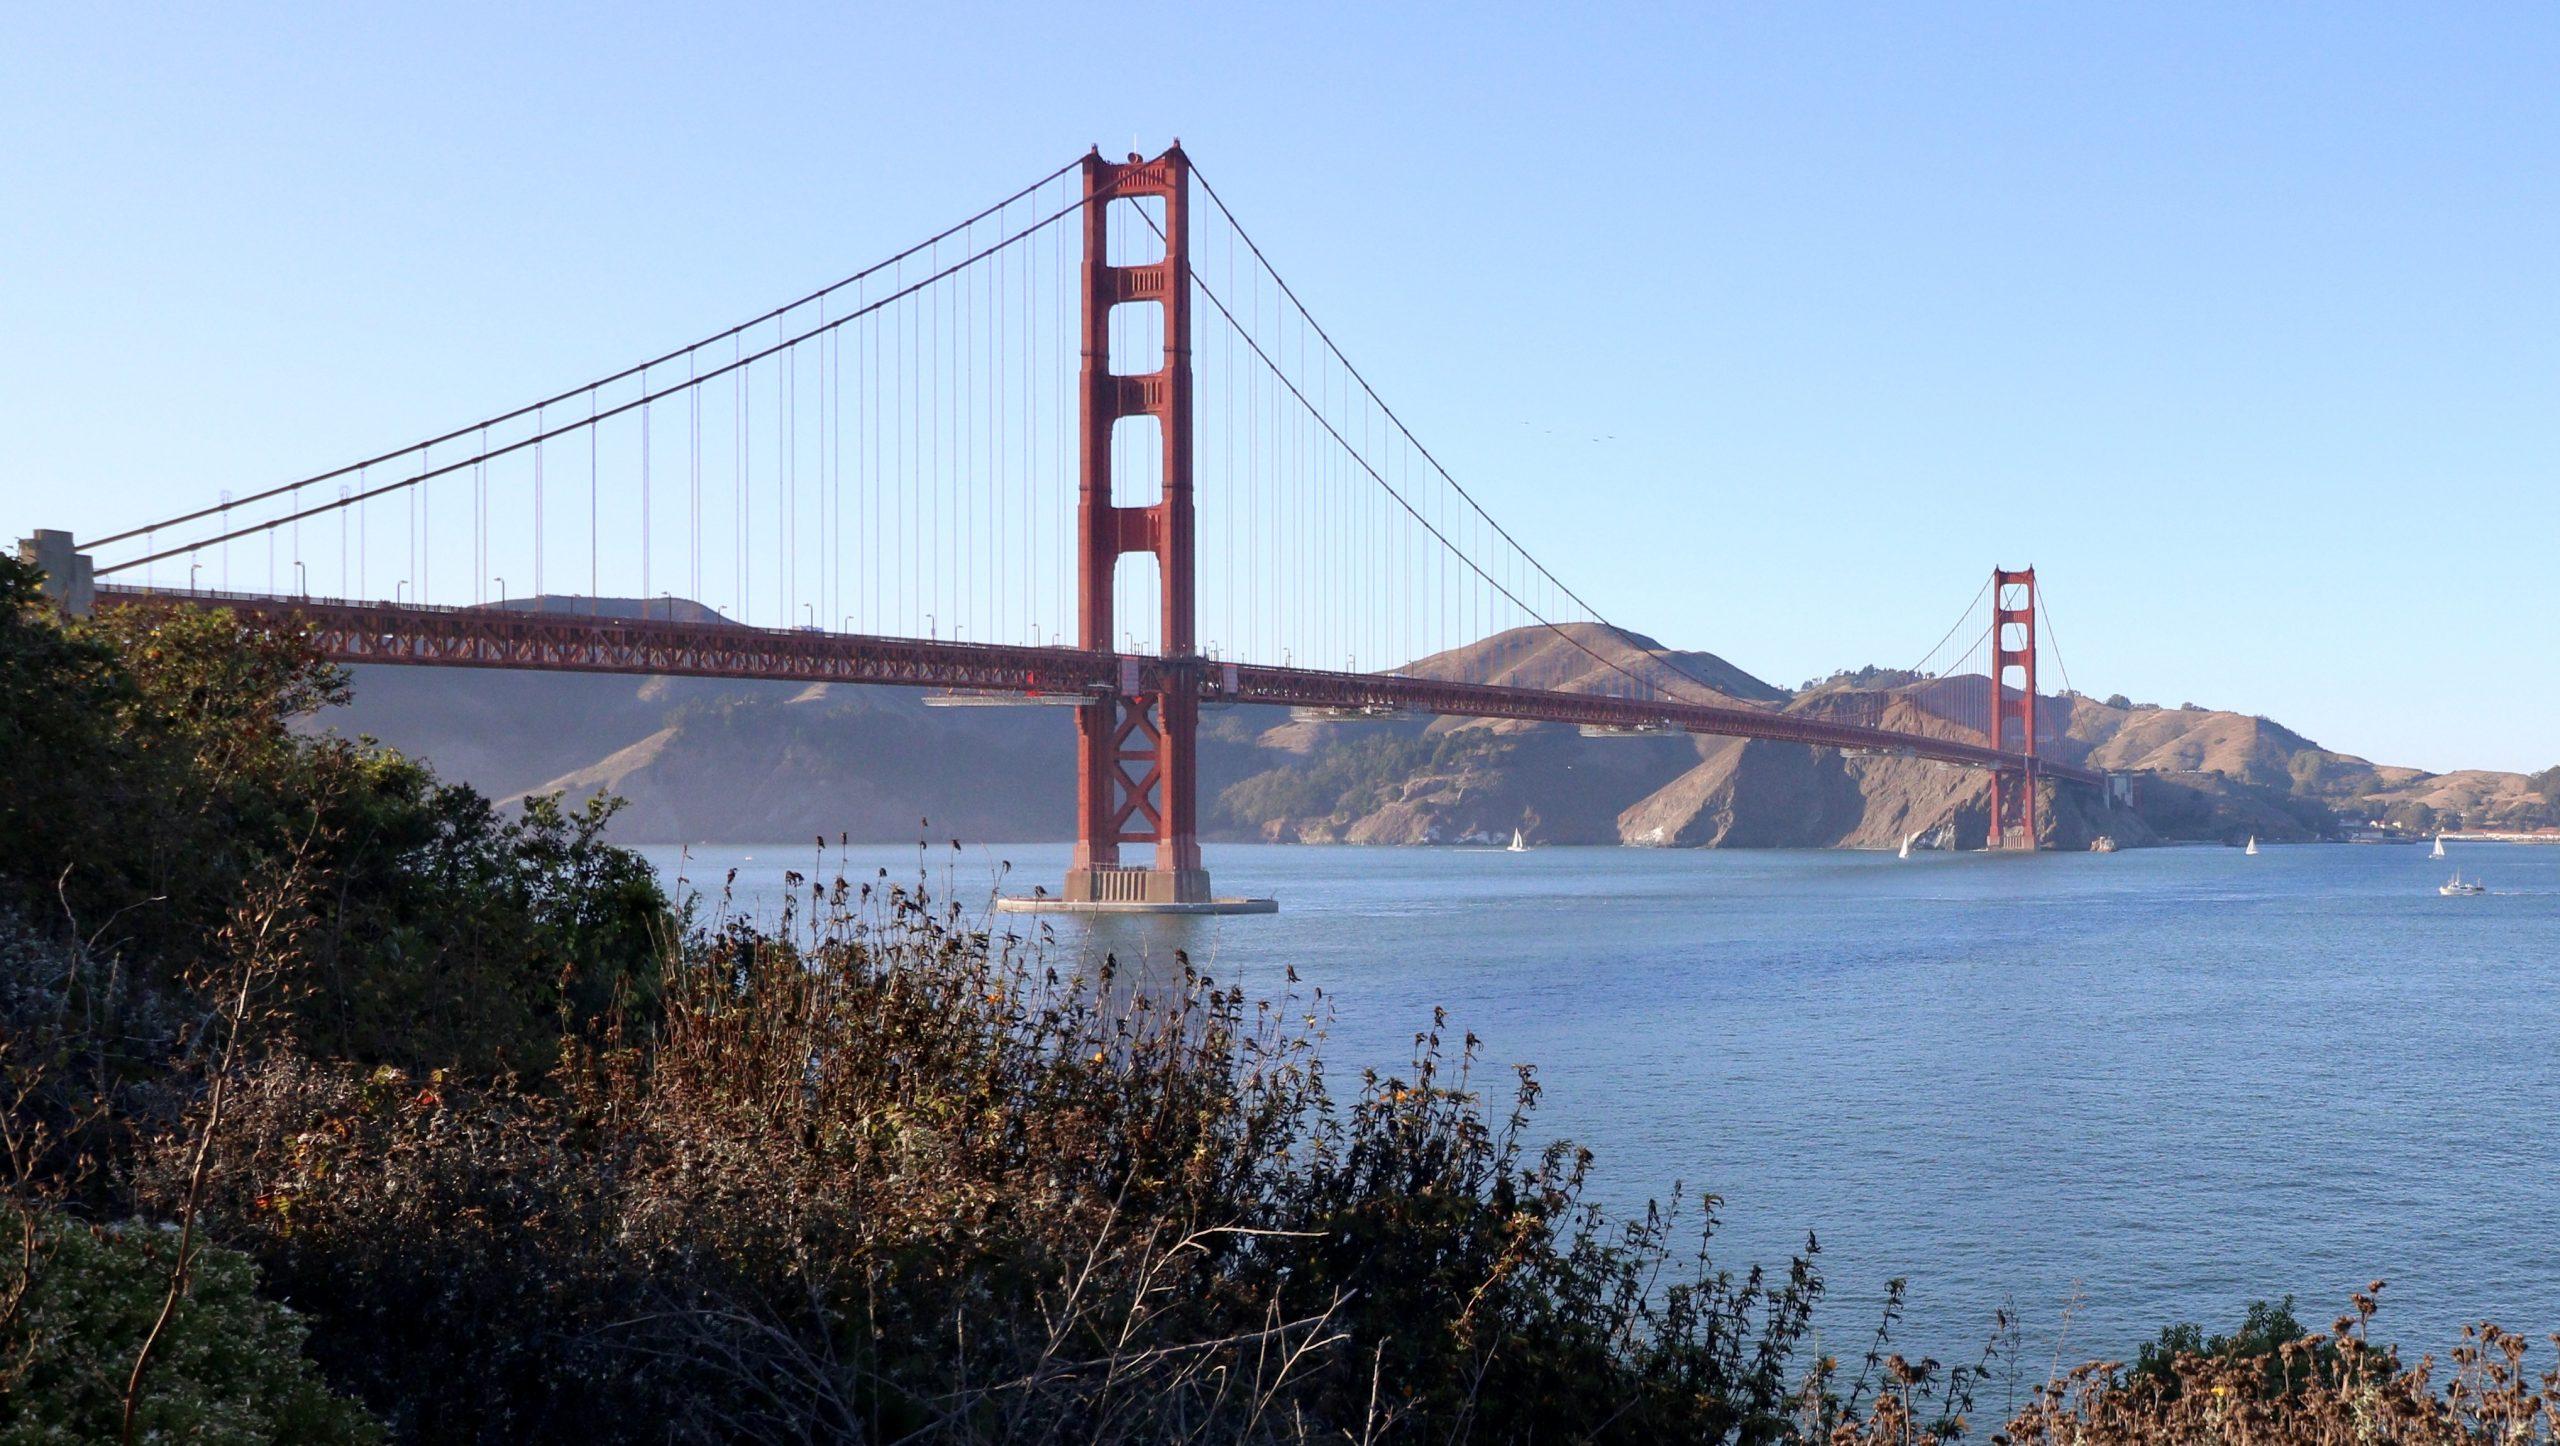 Golden Gate Bridge, San Francisco, #60 of the best U.S. places on Lonely Planet's list